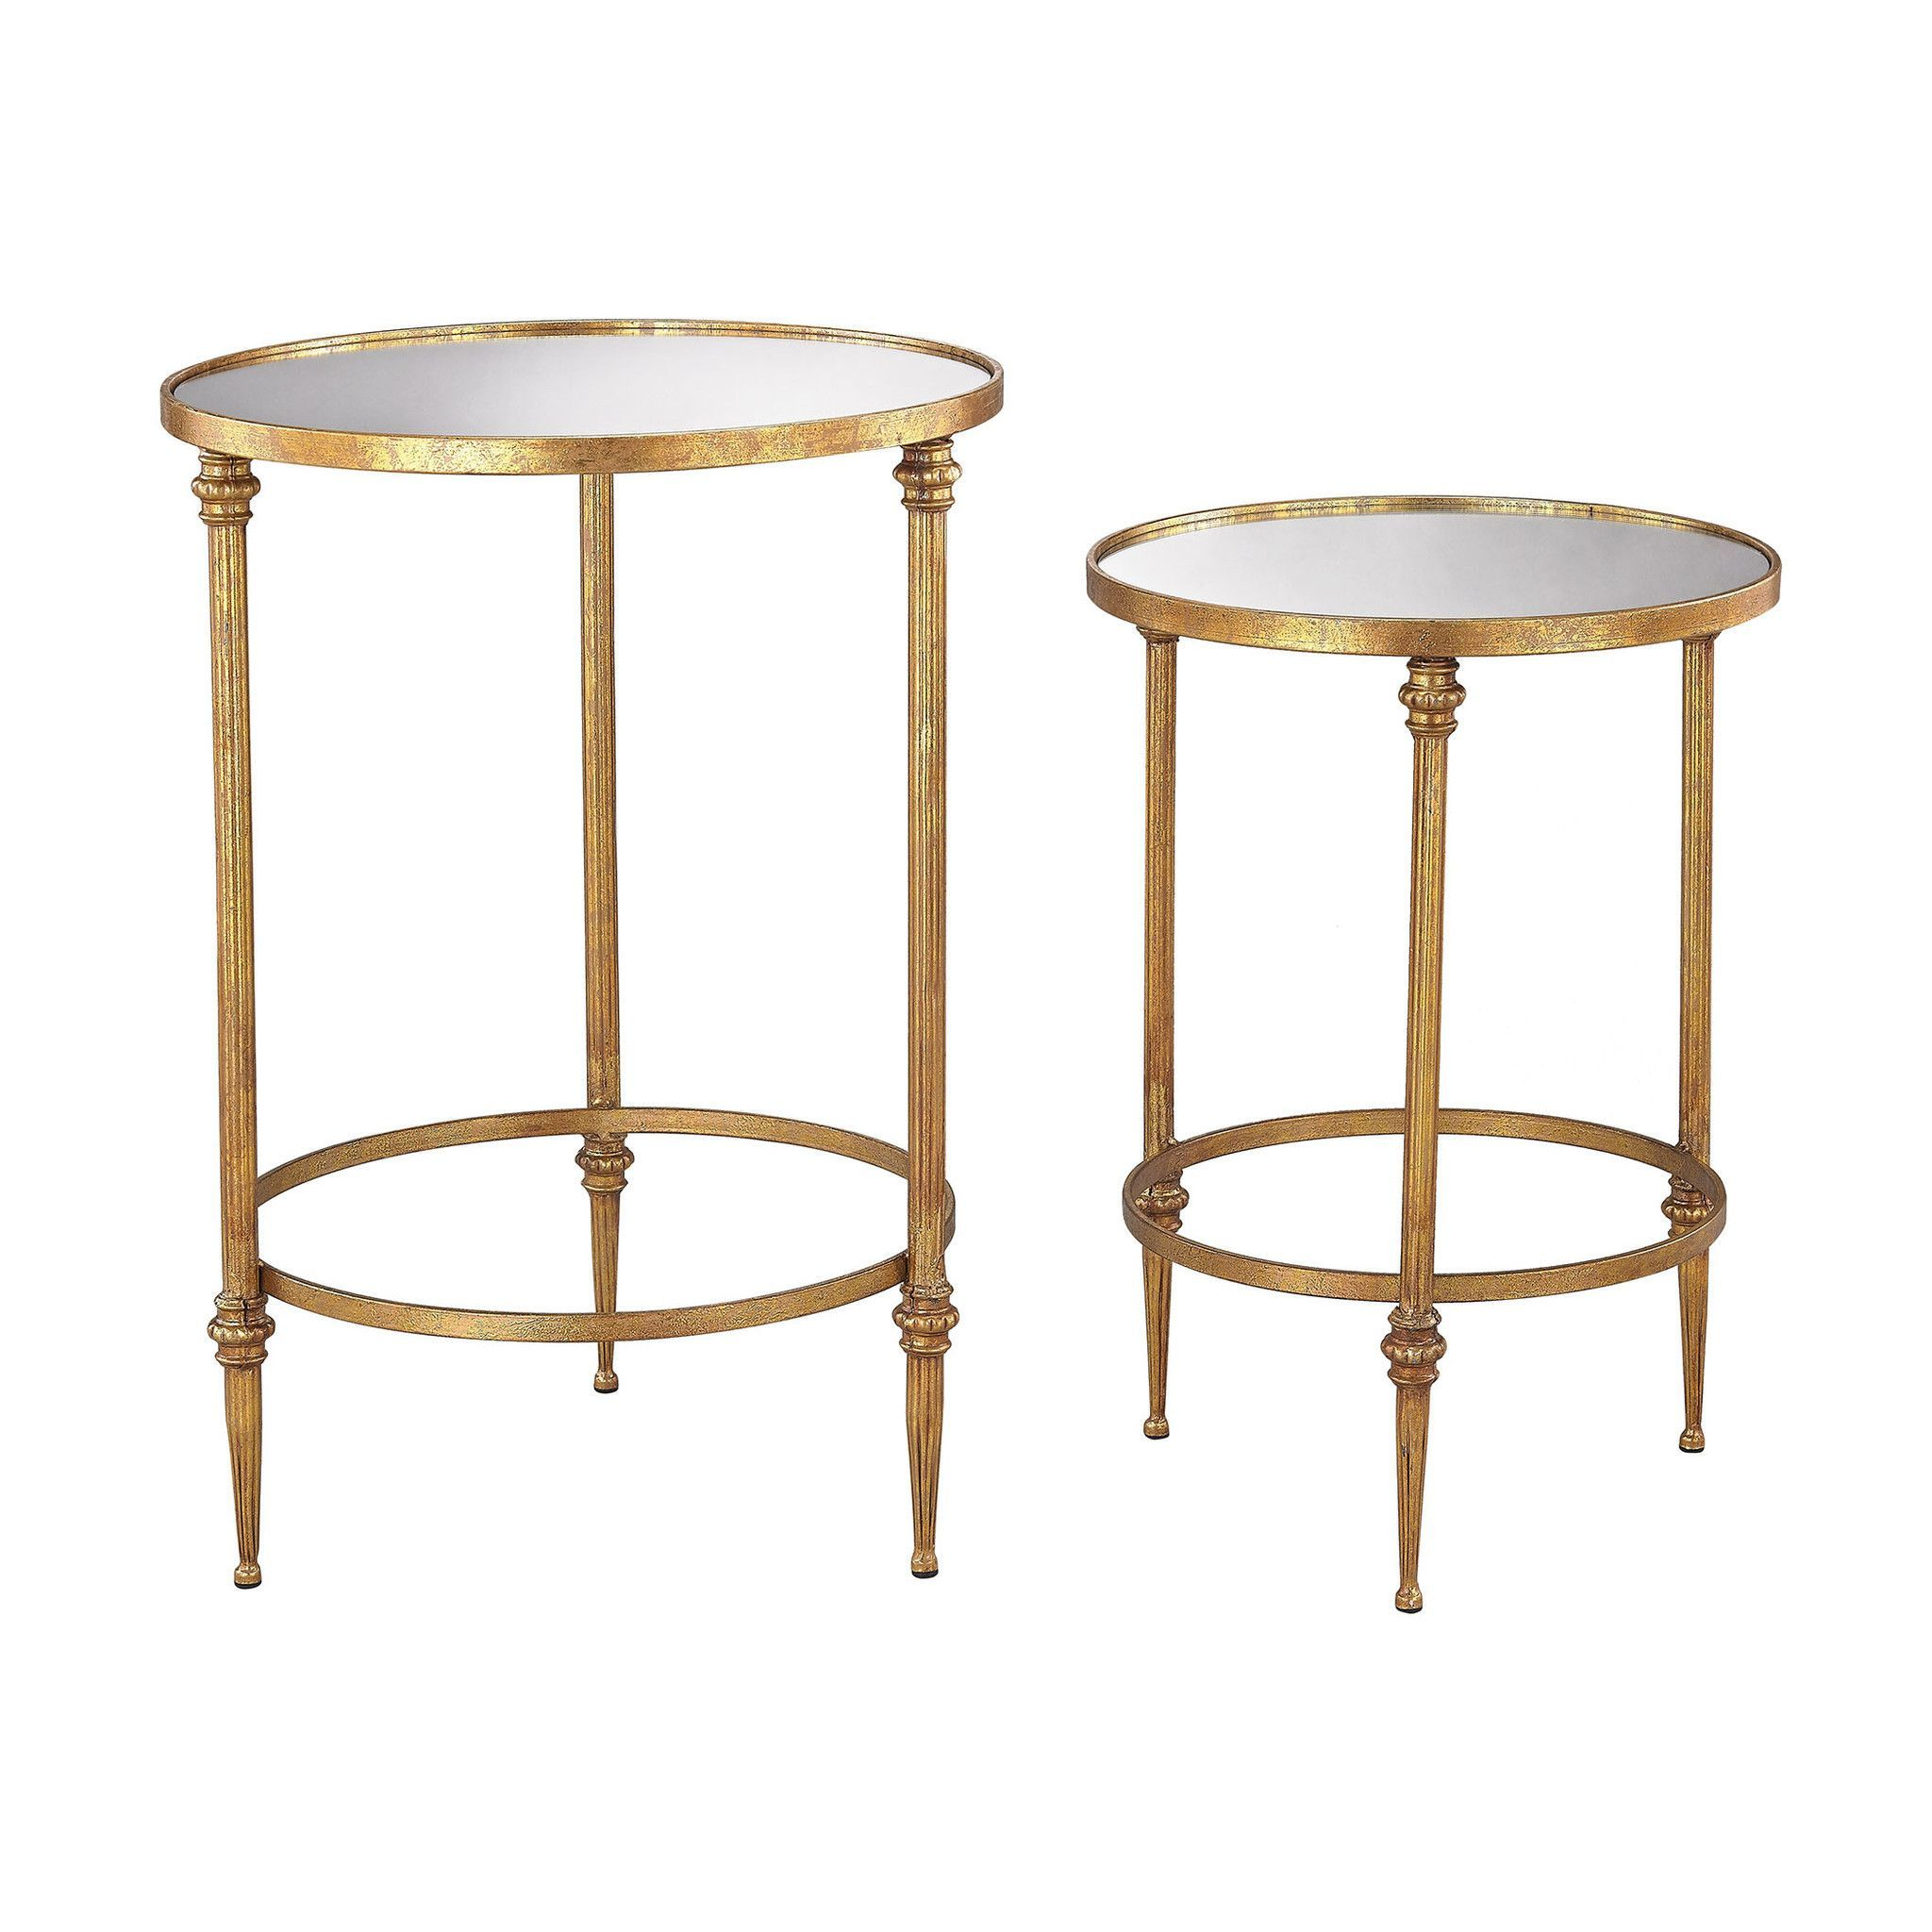 como gold antique shades lamp small tables ideas and set living end decor lamps wall sha threshold accent room redmond ott table round target outdoor plus for tiffa lighting